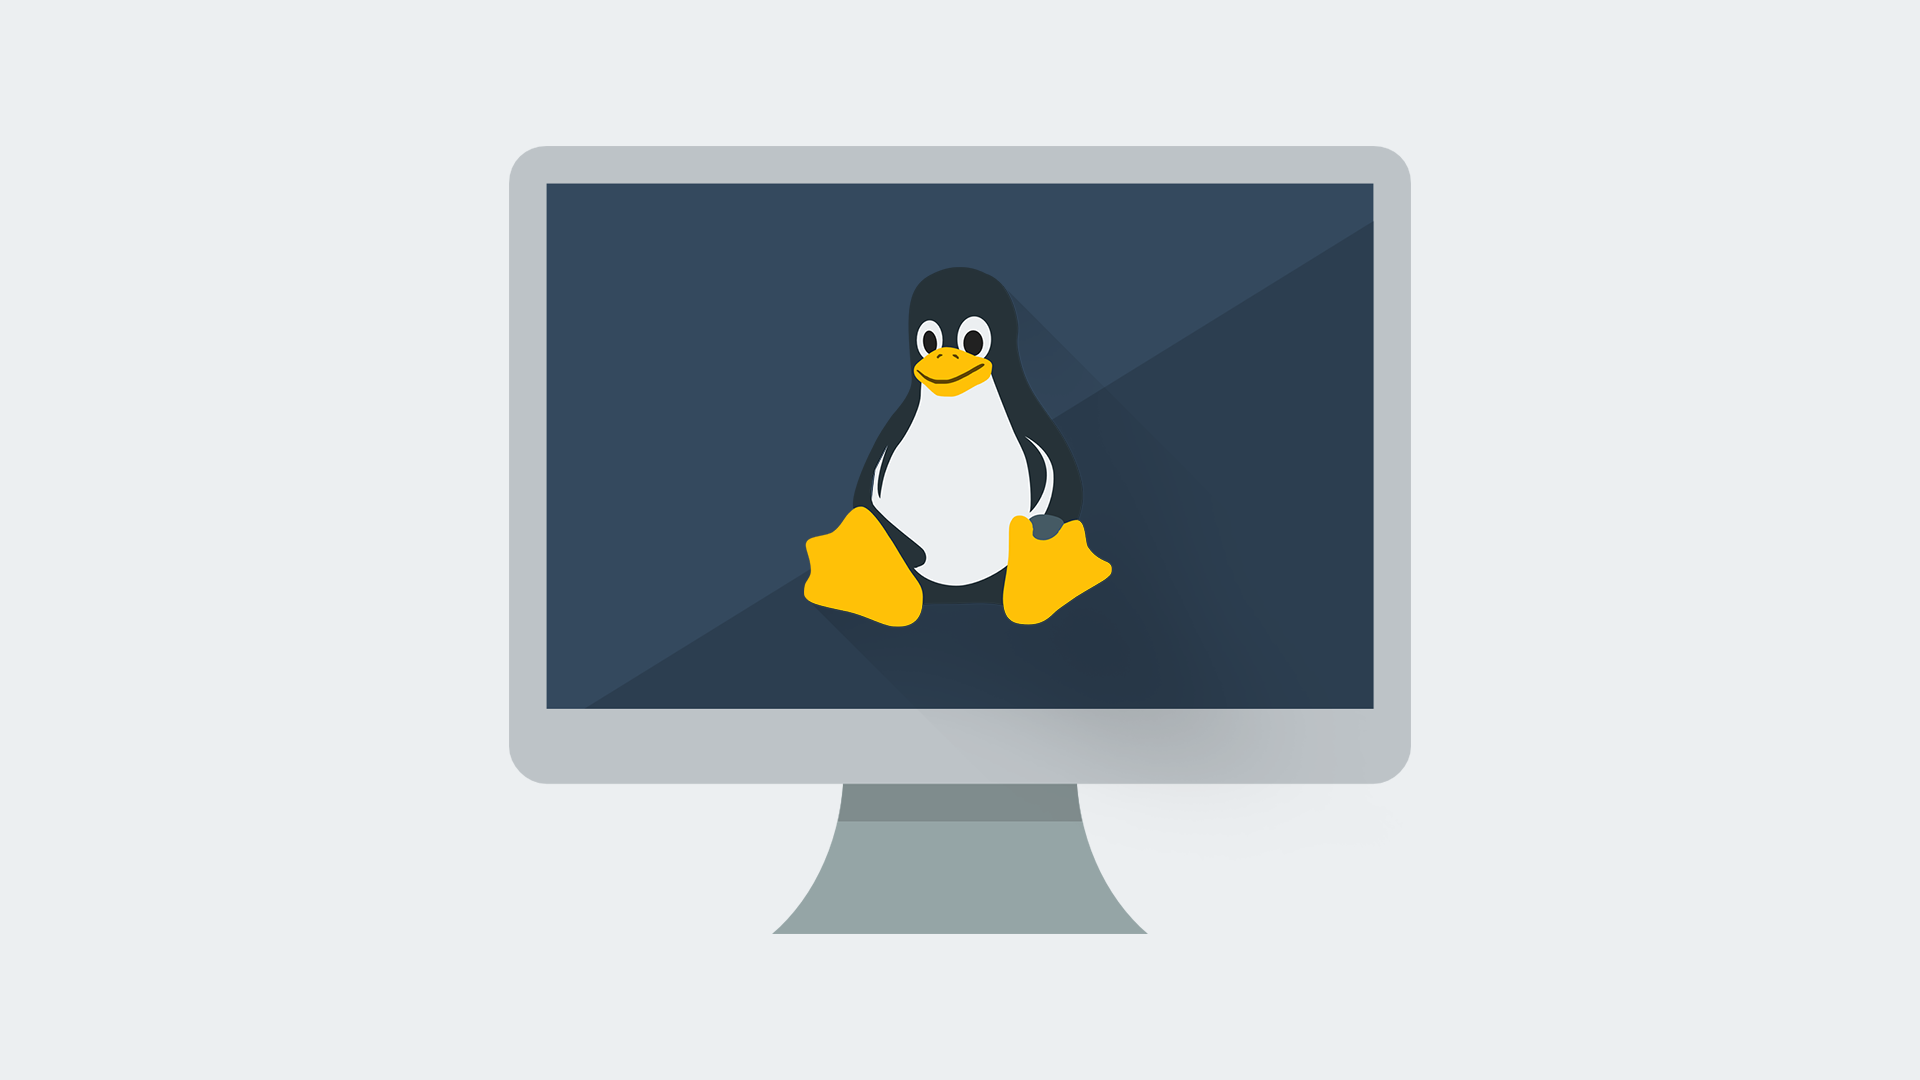 Things Linux needs to do to achieve success in the PC market